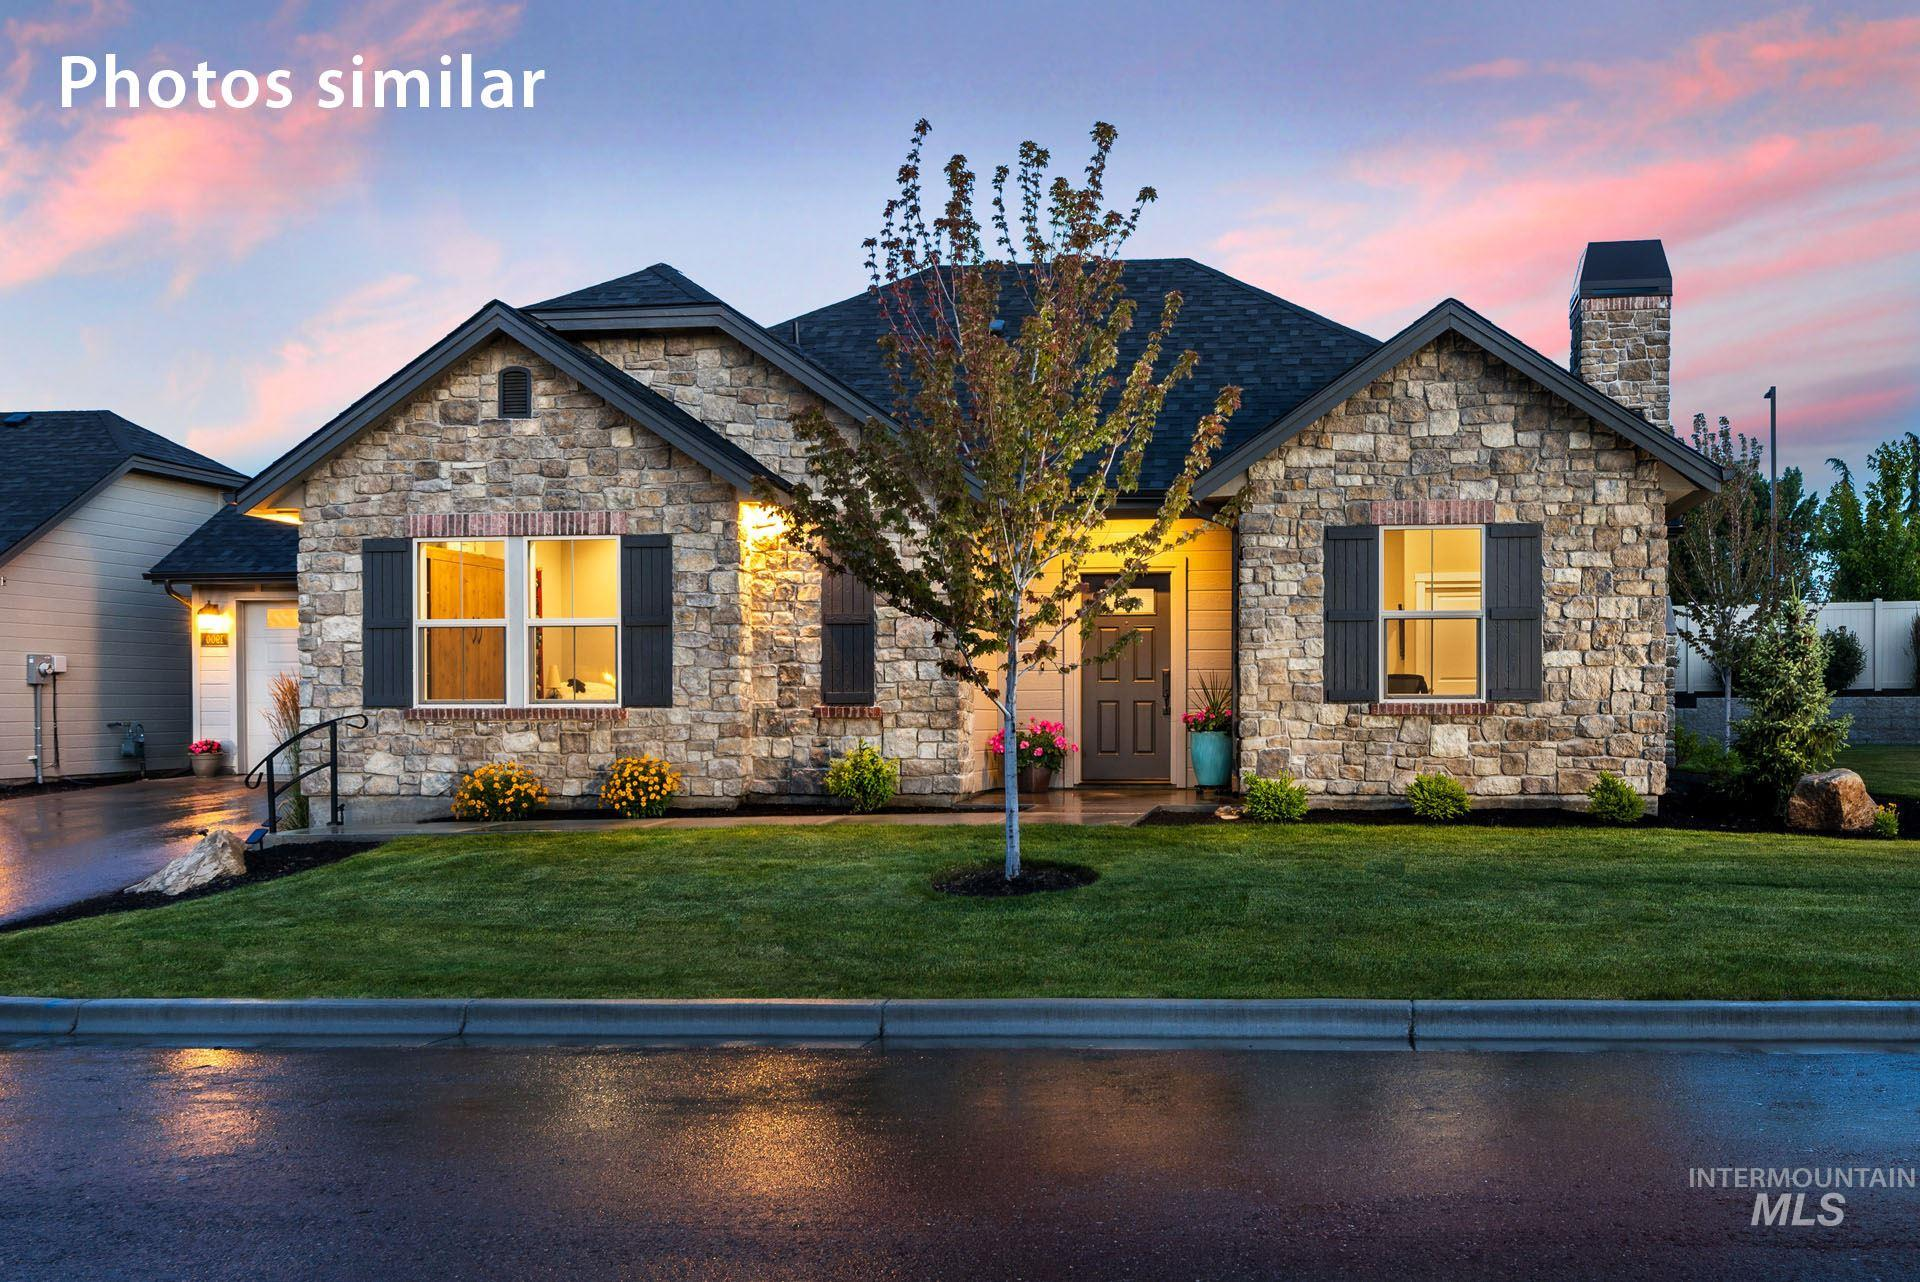 Geneva - single level ATTACHED-patio home   Blackrock Homes. Brand new completed home attached only at the garage, no living space attached. You'll love the vaults, hardwood floors, stone surfaces, walk-in pantry & patio. S. Meridian's Luxury Gated Community offers access to a stunning 2,600 sf Social House (clubhouse), w/ landscape maint., snow removal, long-term exterior repaint & roof replacement. Photos are similar, actual model has custom Driftwood stained cabinets, gray quartz & views of common area.